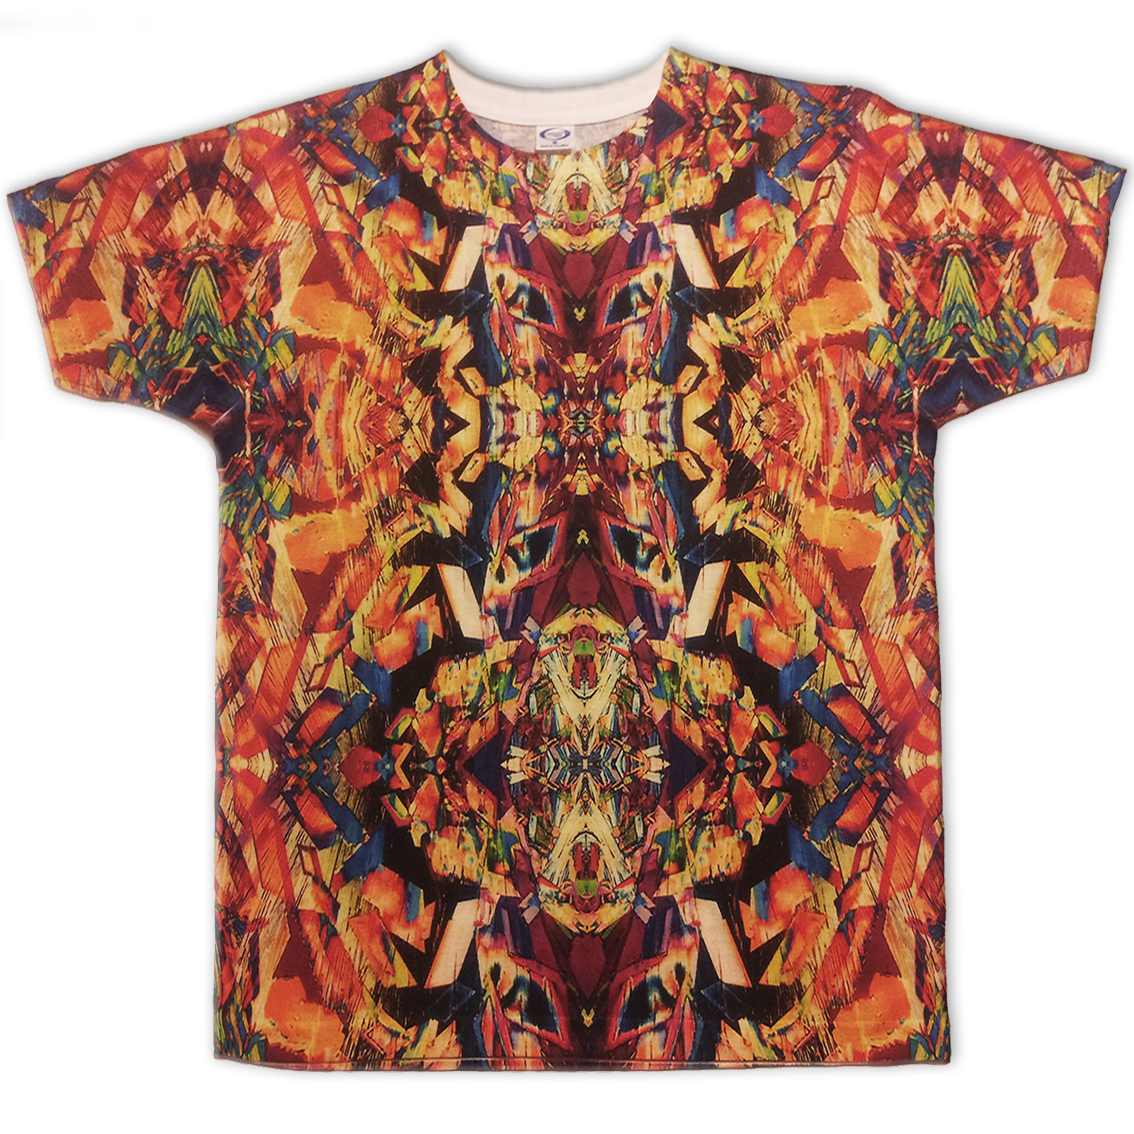 All-over printed t-shirt koleidoscope